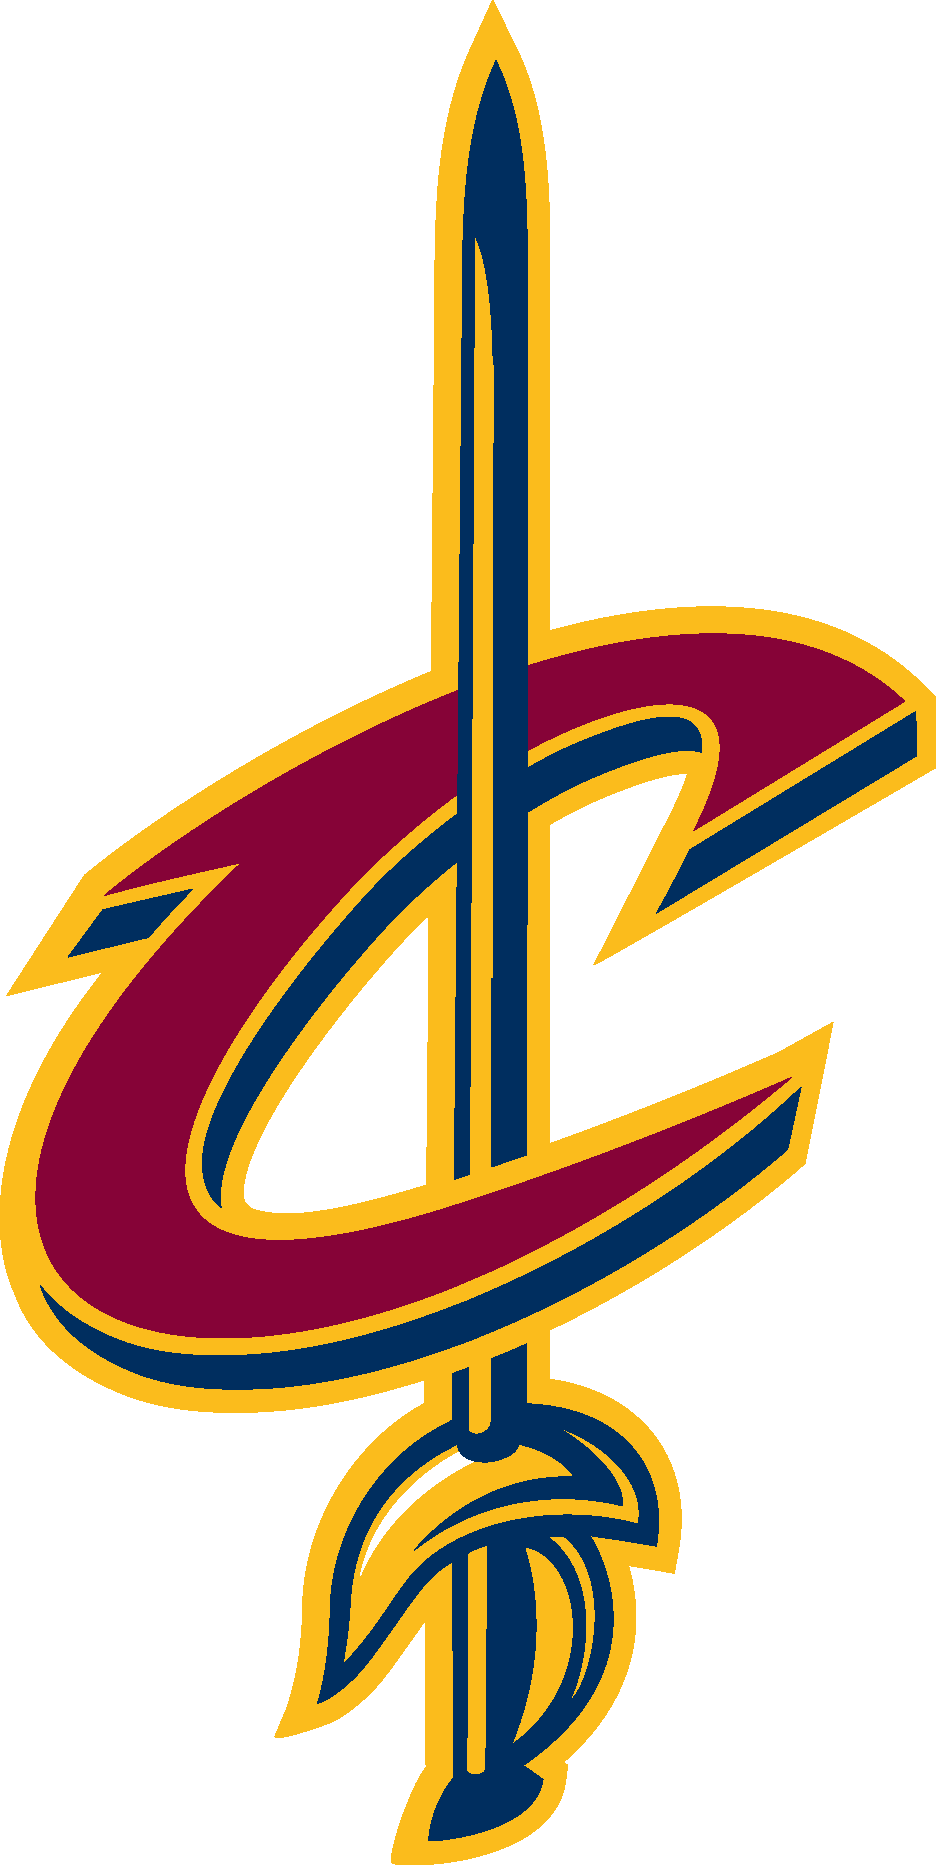 936x1865 Cleveland Cavaliers Logo Cavs Vector Eps Free Download, Logo